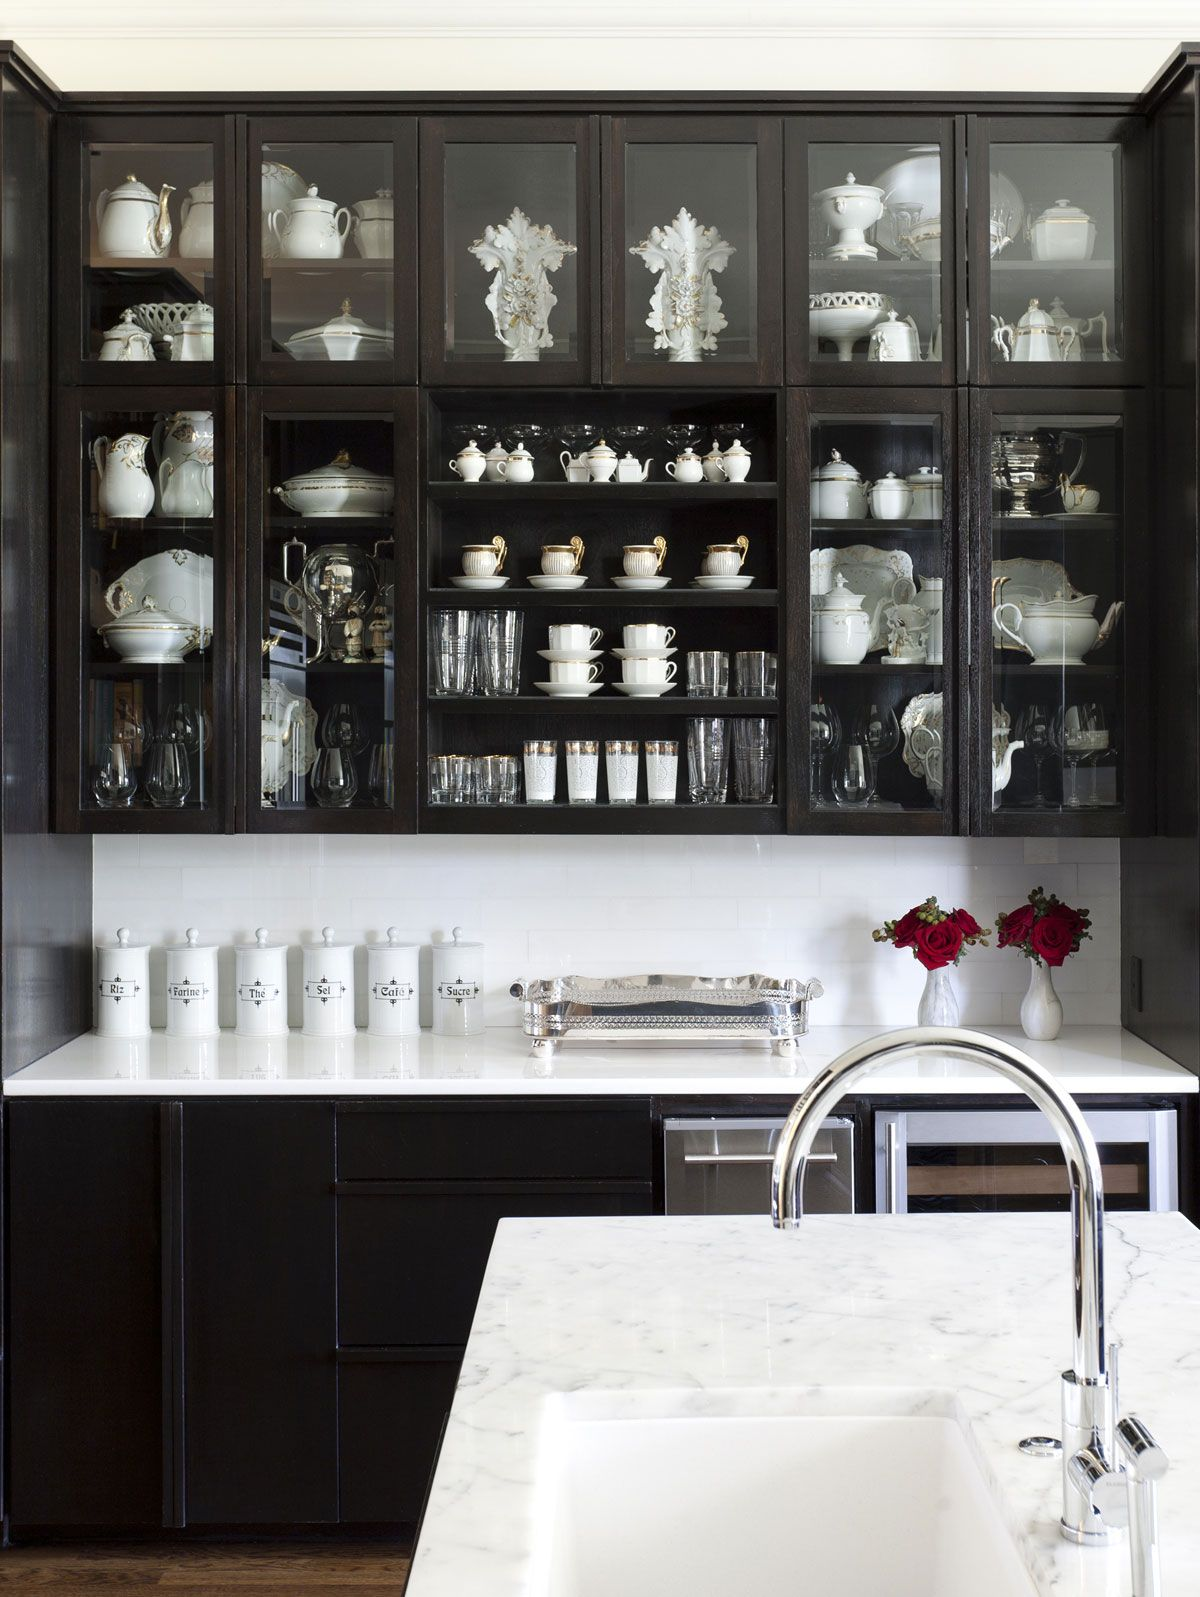 ...or black interior glass cupboards